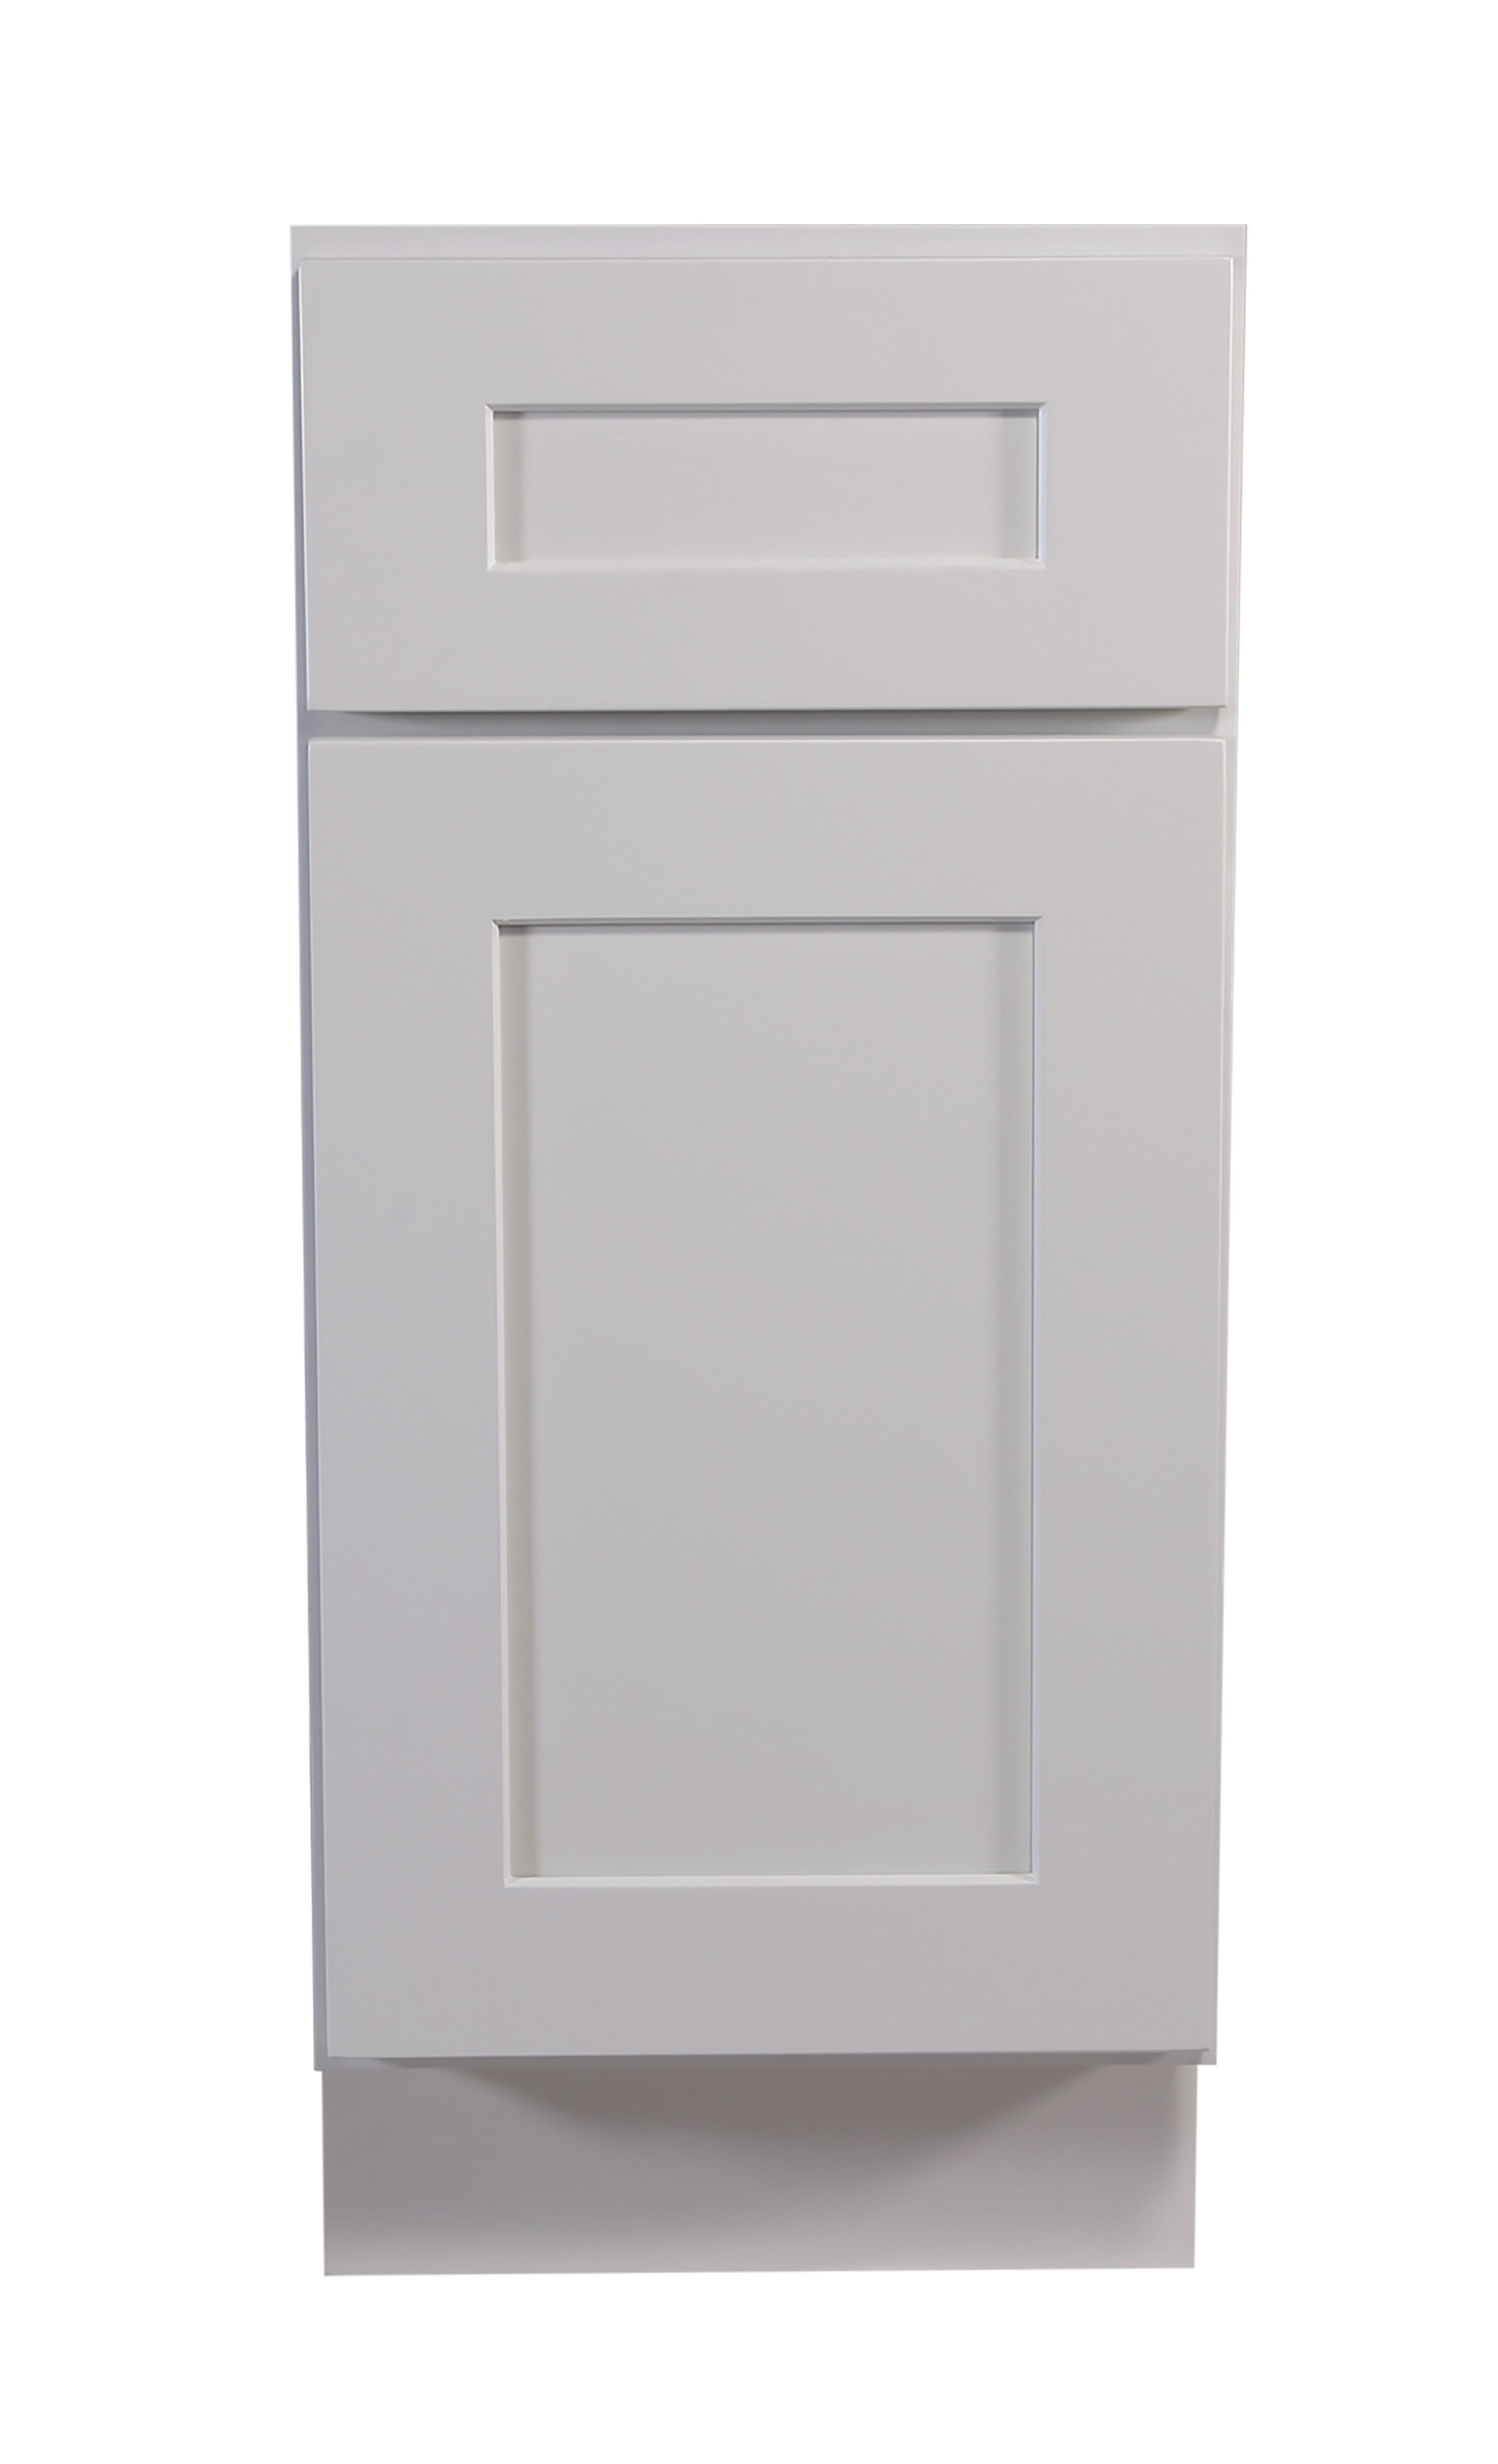 design house brookings 34 5   x 9   kitchen base cabinet  u0026 reviews   wayfair design house brookings 34 5   x 9   kitchen base cabinet  u0026 reviews      rh   wayfair com